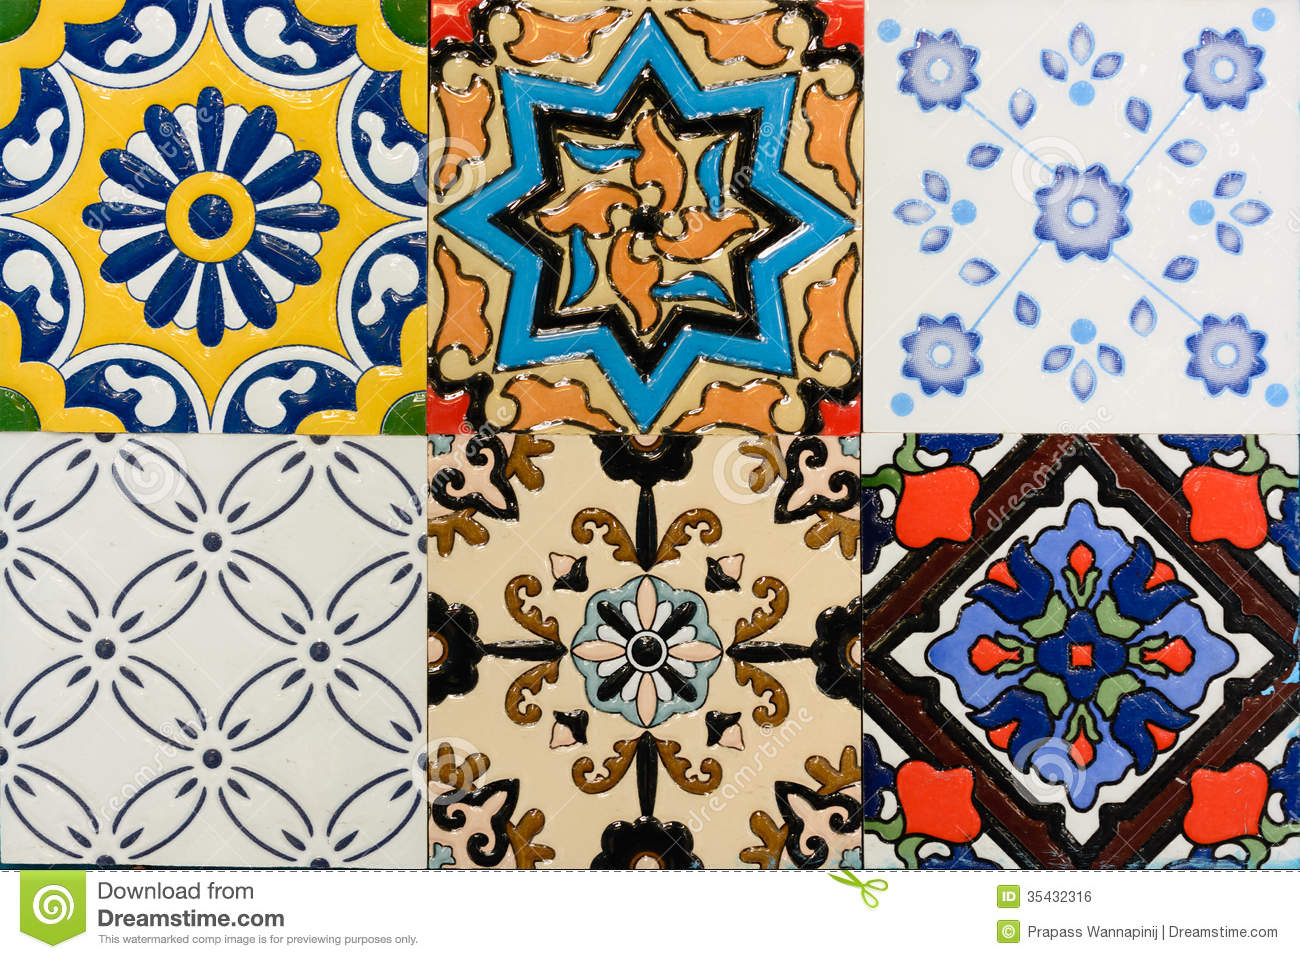 Spanich Moroccan Style Vintage Ceramic Tile Royalty Free